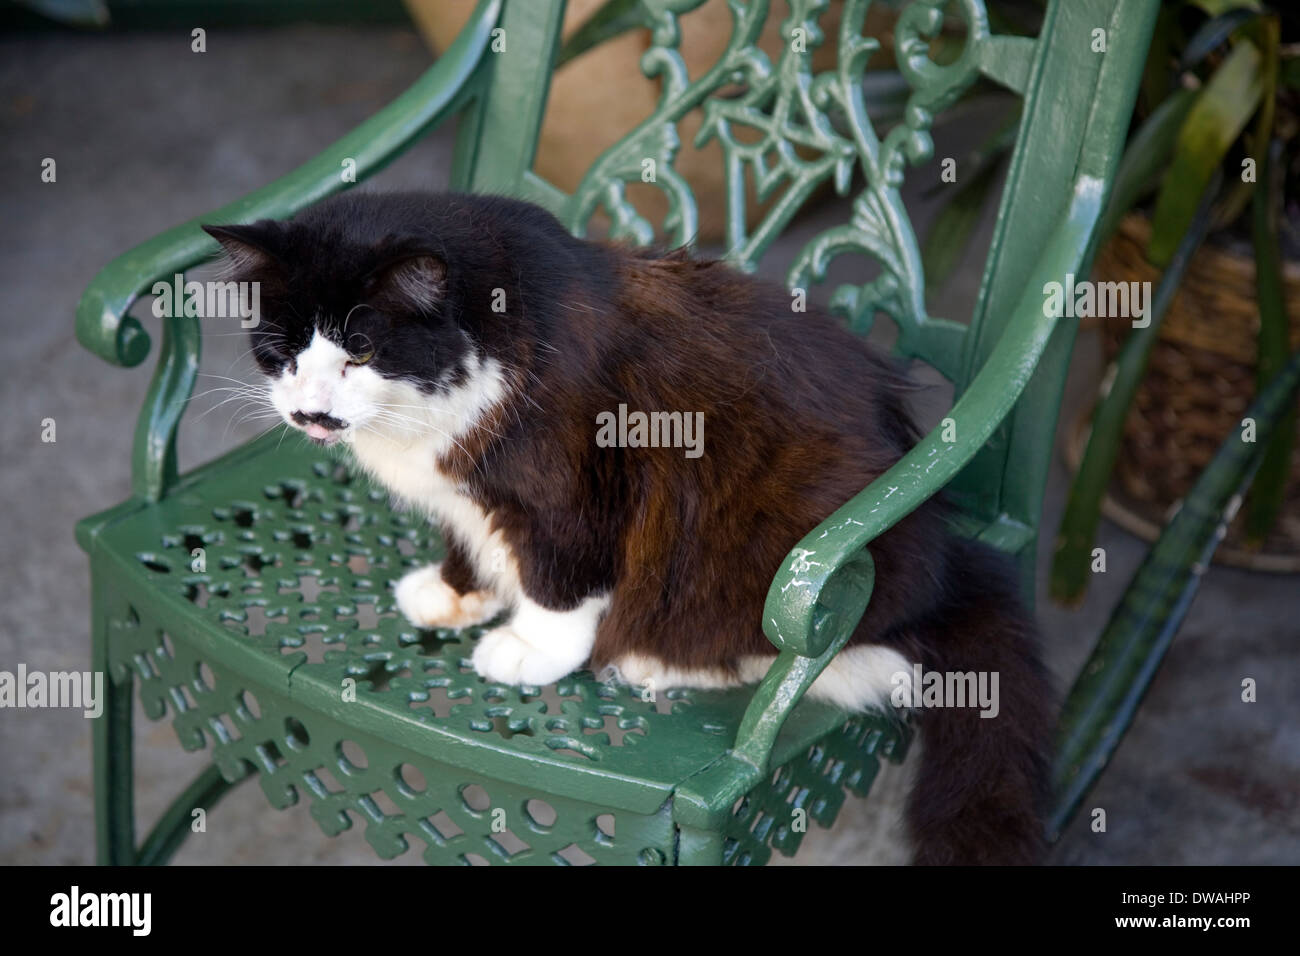 Resident cat at the Ernest Hemingway Home & Museum, Key West, Florida, USA Stock Photo